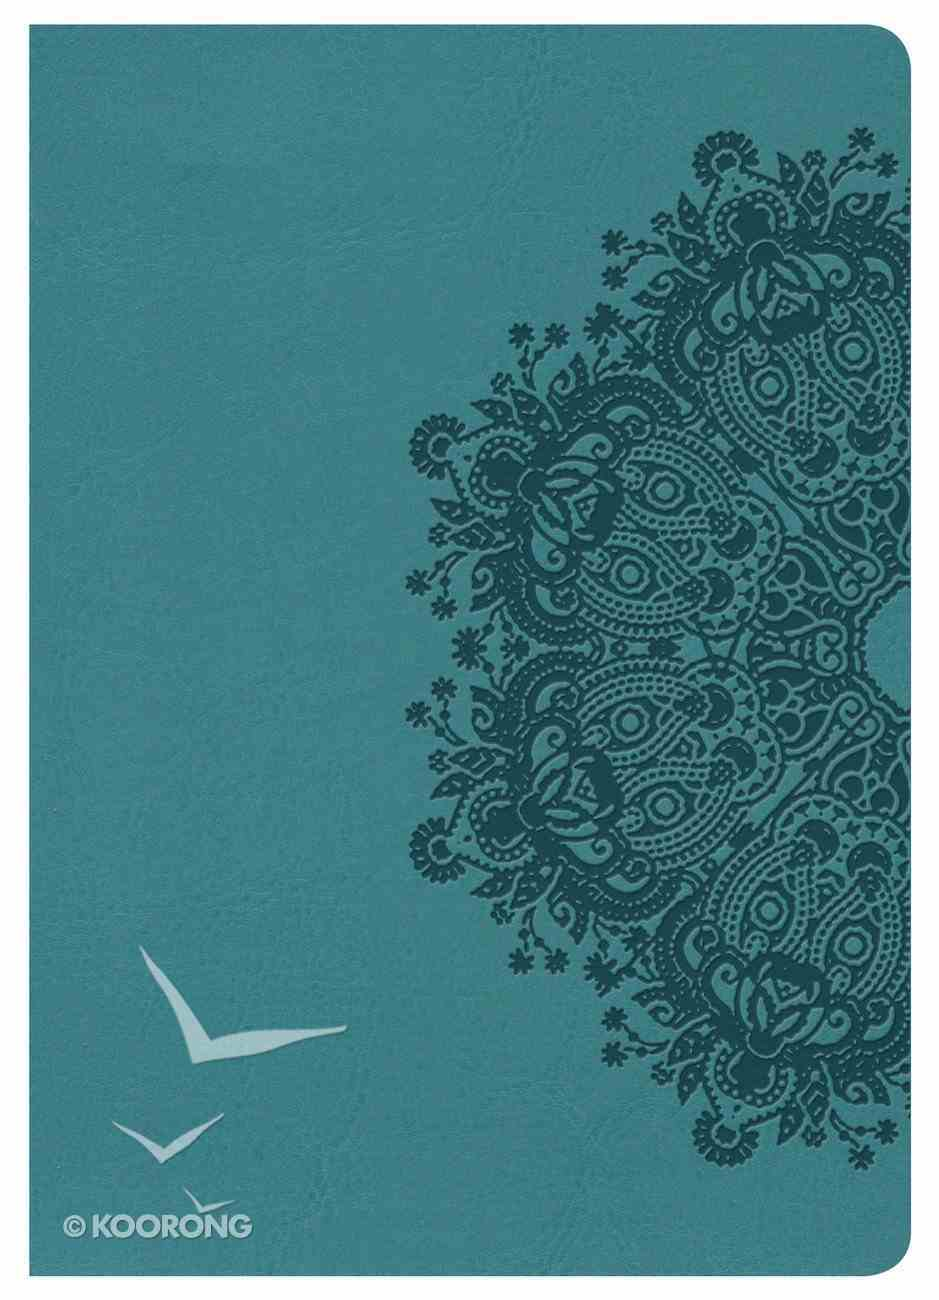 HCSB Large Print Compact Bible Teal Leathertouch Imitation Leather